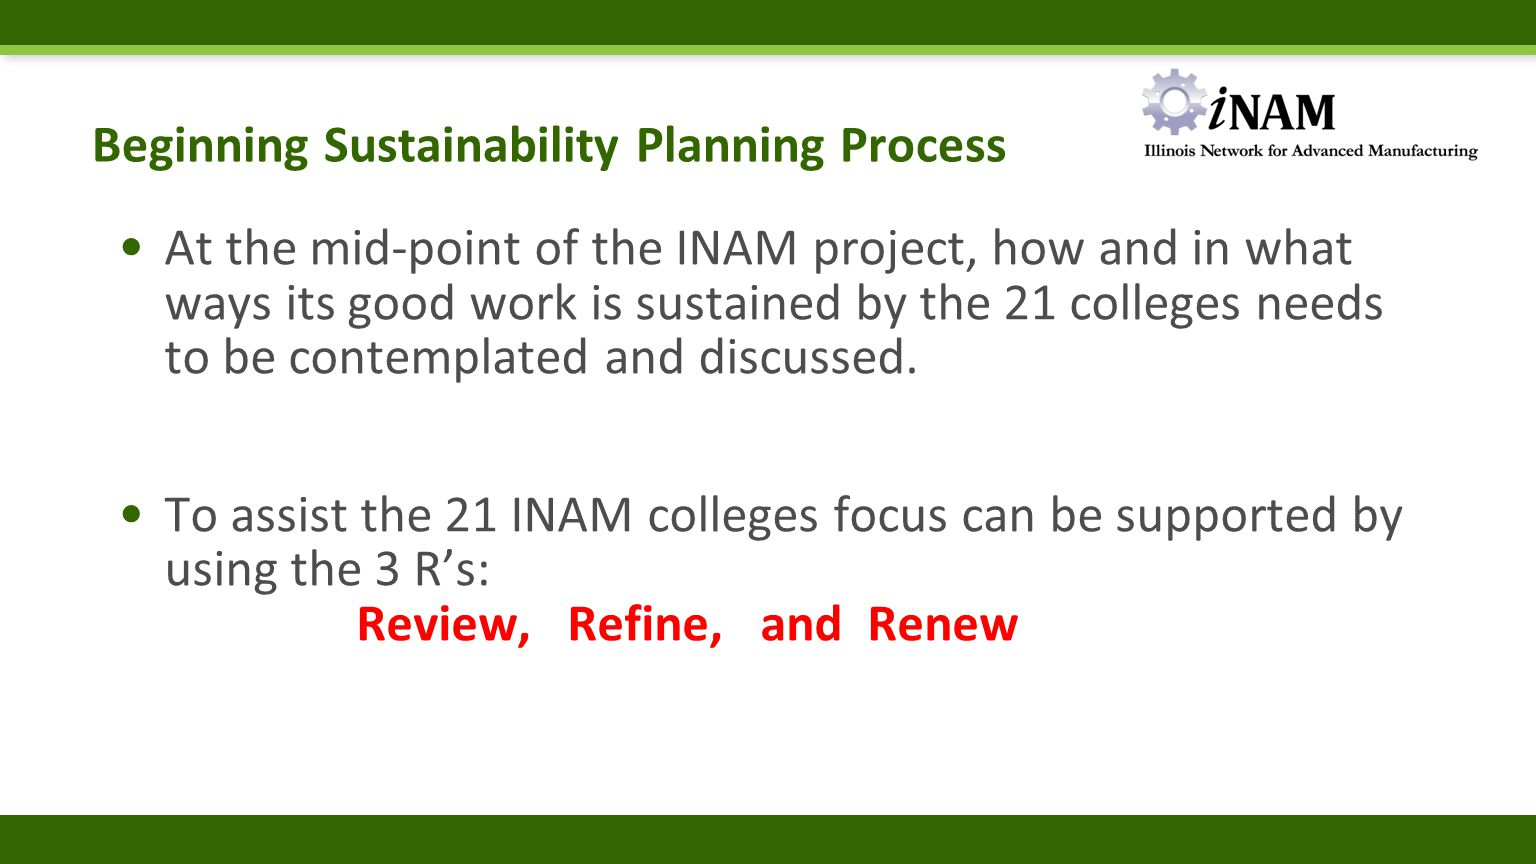 Beginning Sustainability Planning Process At the mid-point of the INAM project, how and in what ways its good work is sustained by the 21 colleges nee